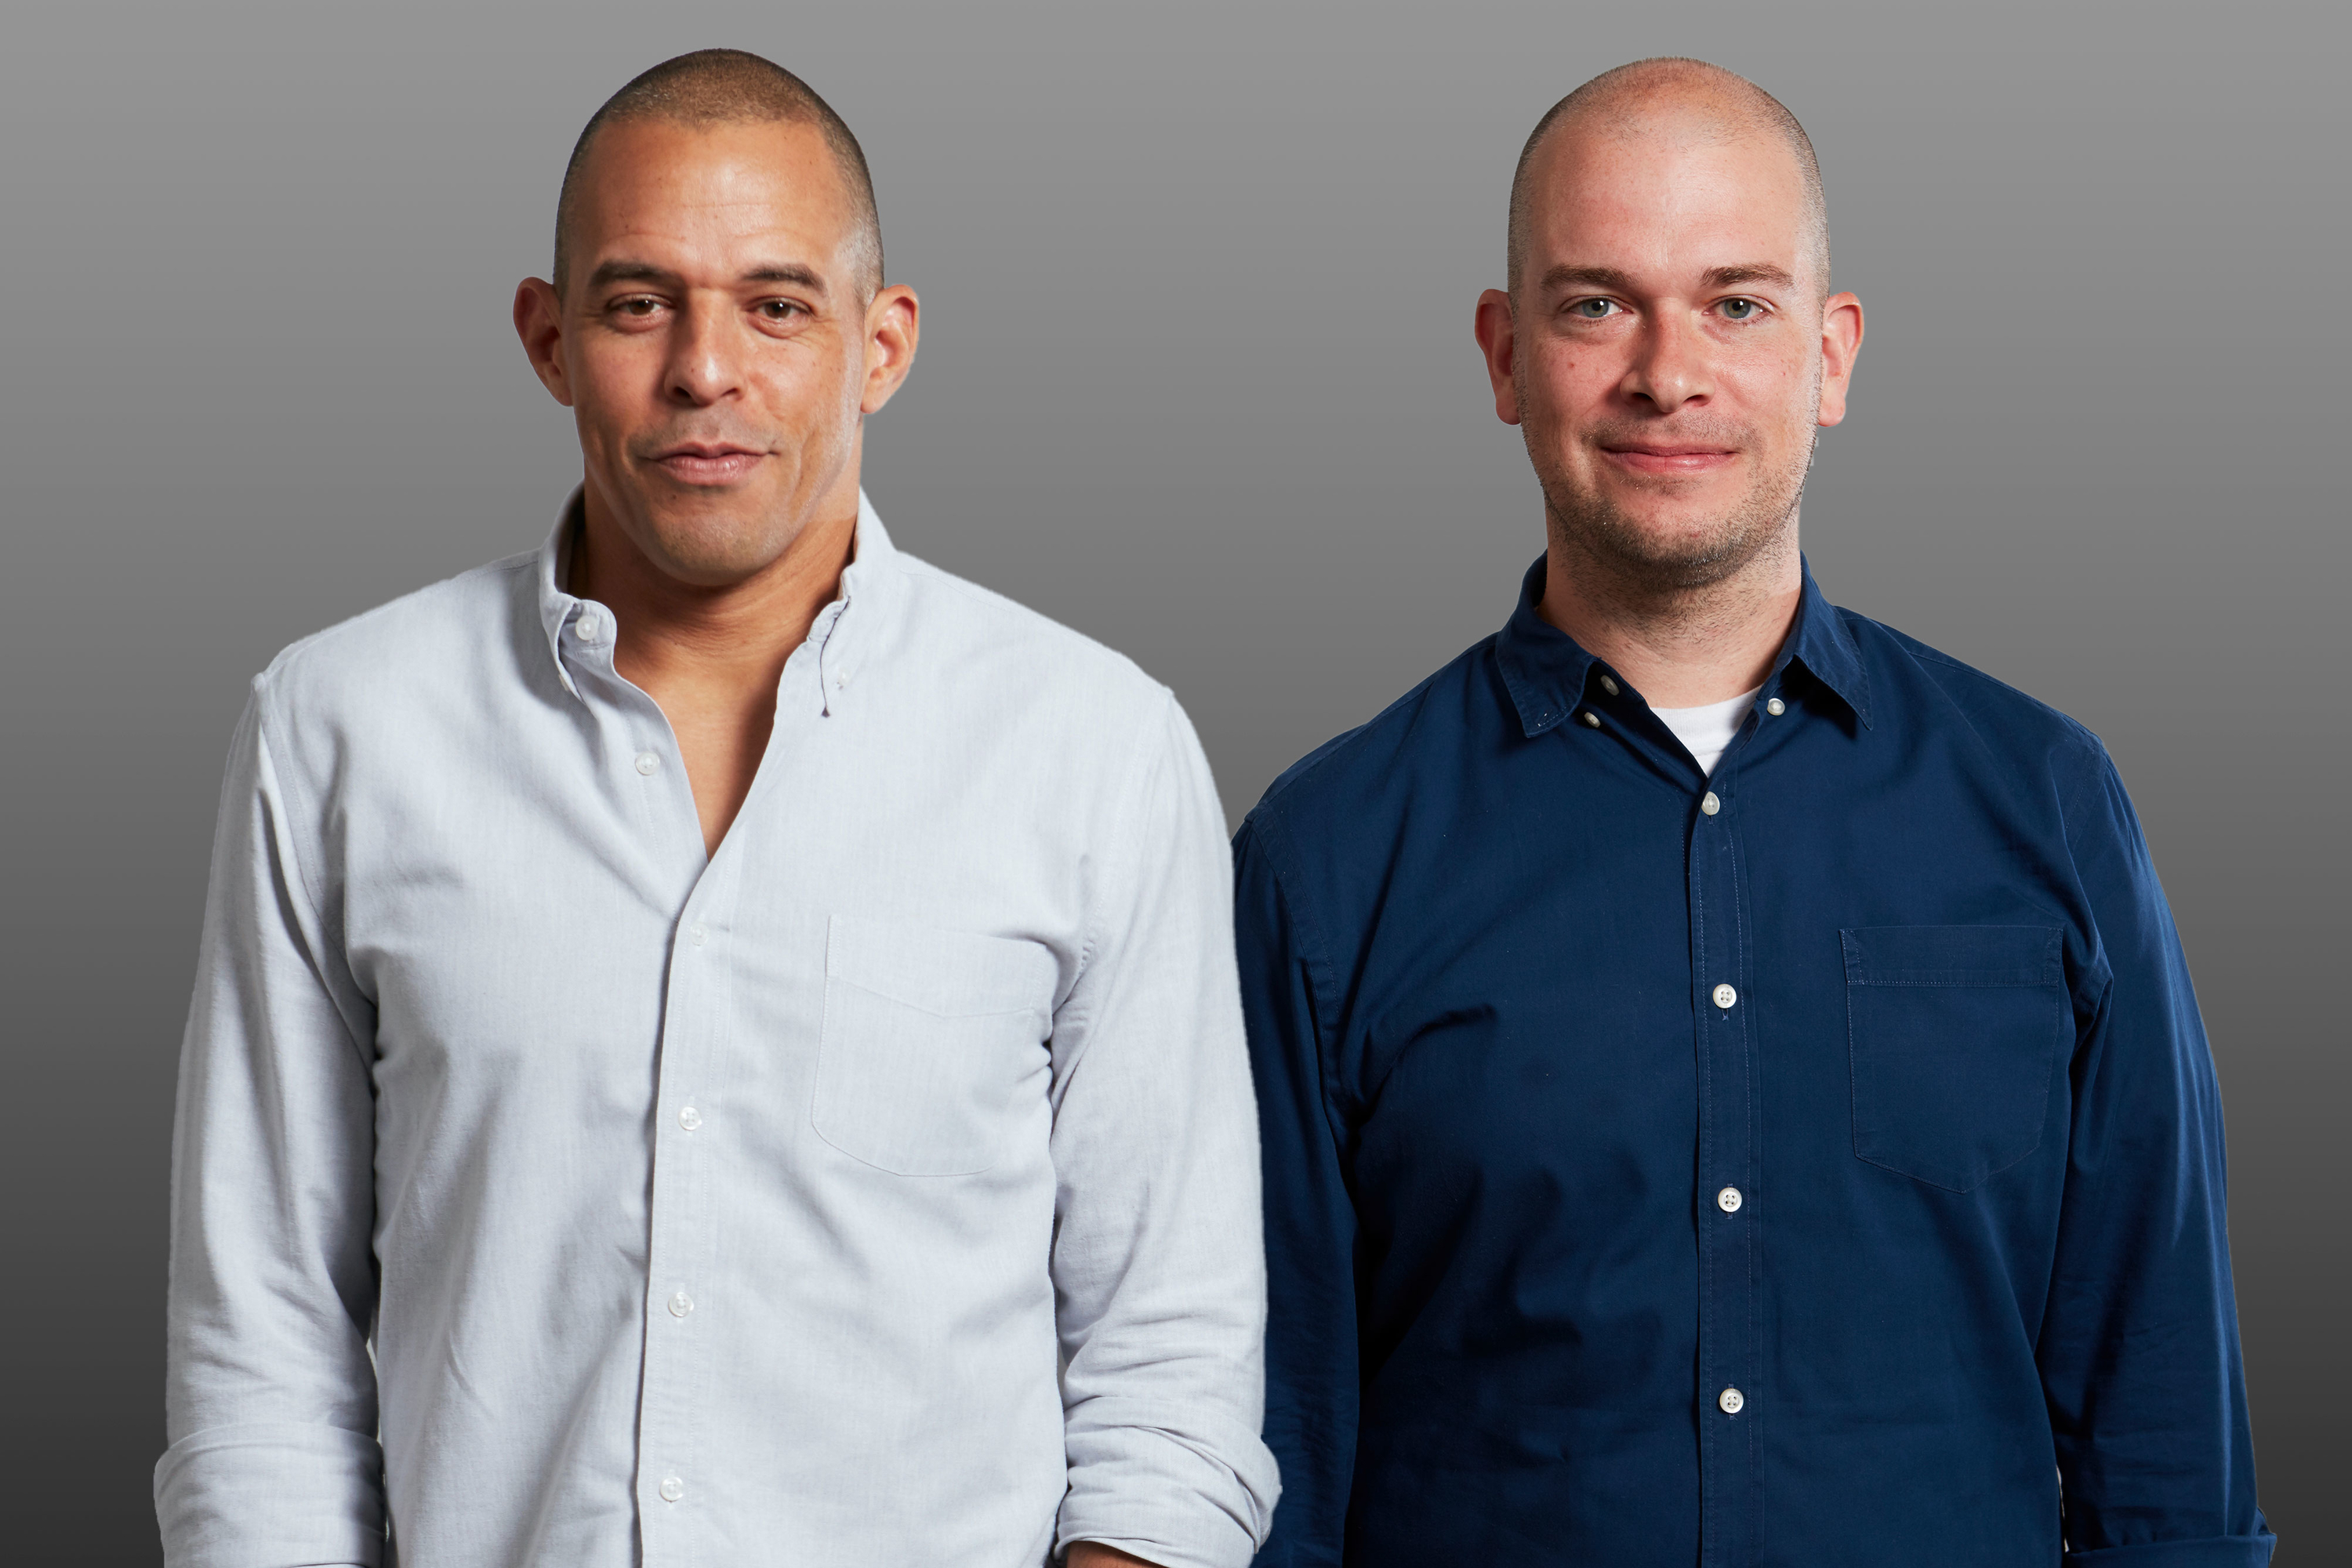 Wieden + Kennedy promotes Karl Lieberman to chief creative officer in leadership shakeup